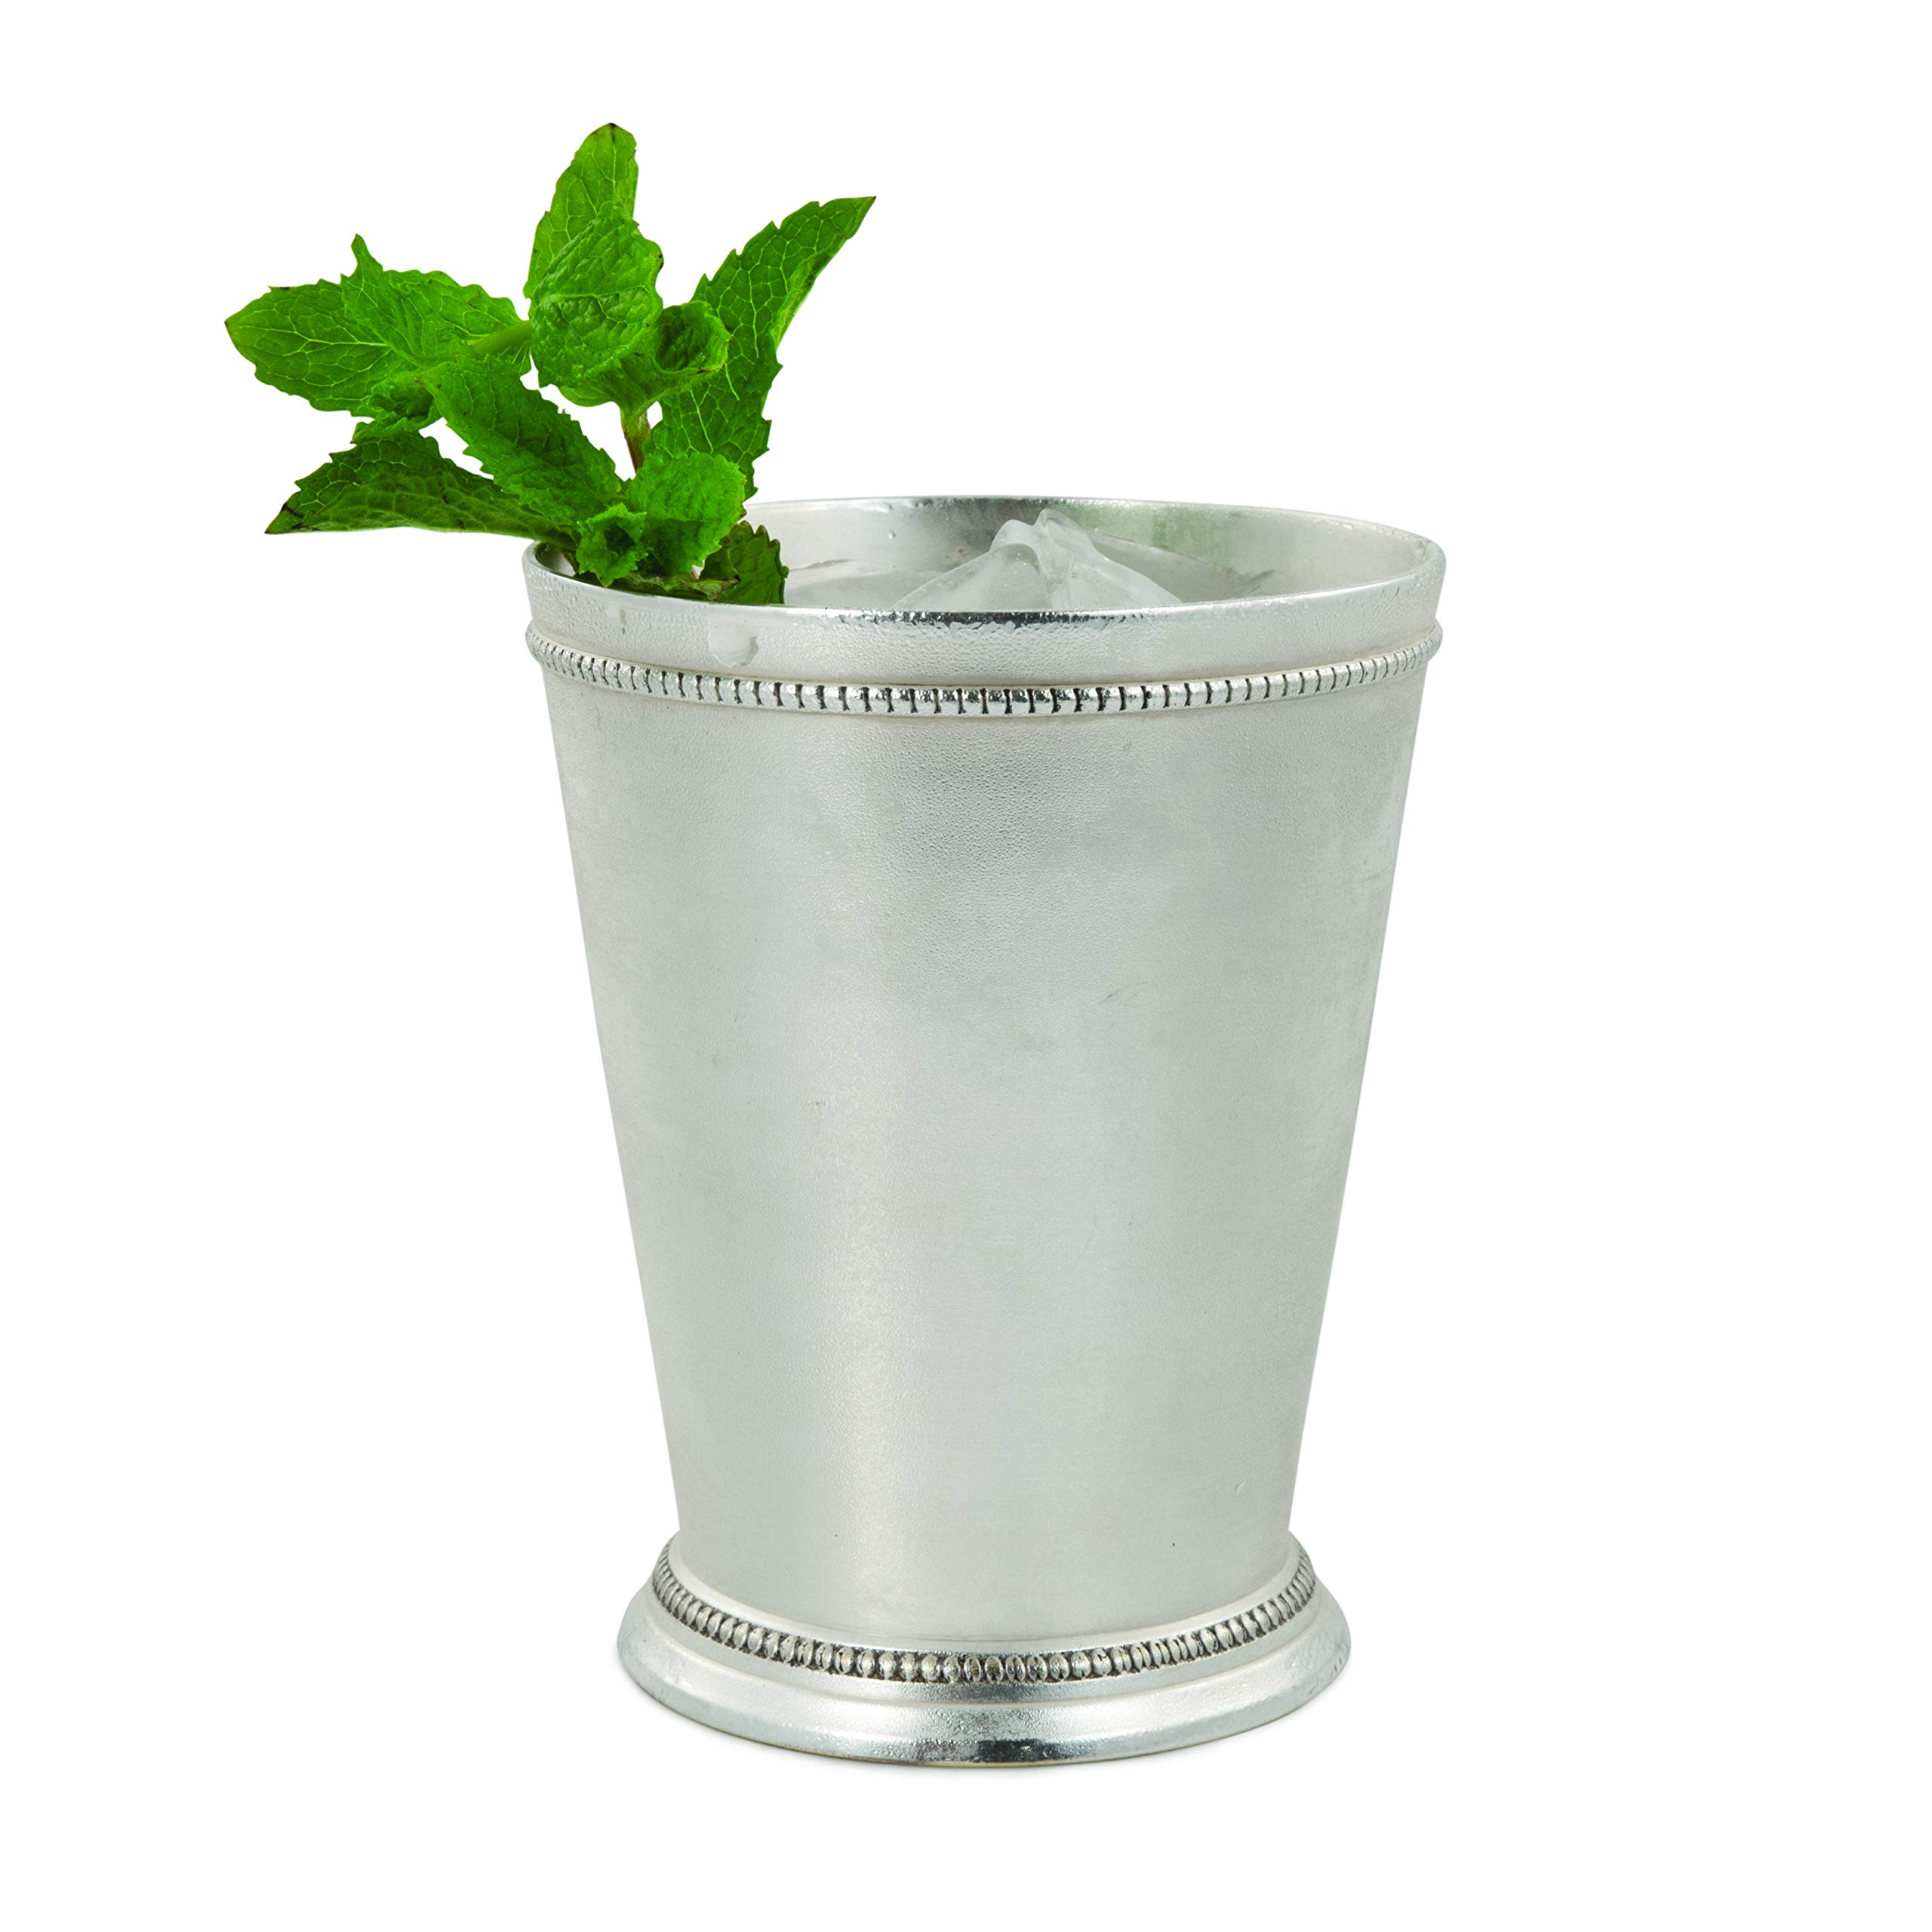 Twine Old Kentucky Home: Mint Julep Cup, Silver by Twine